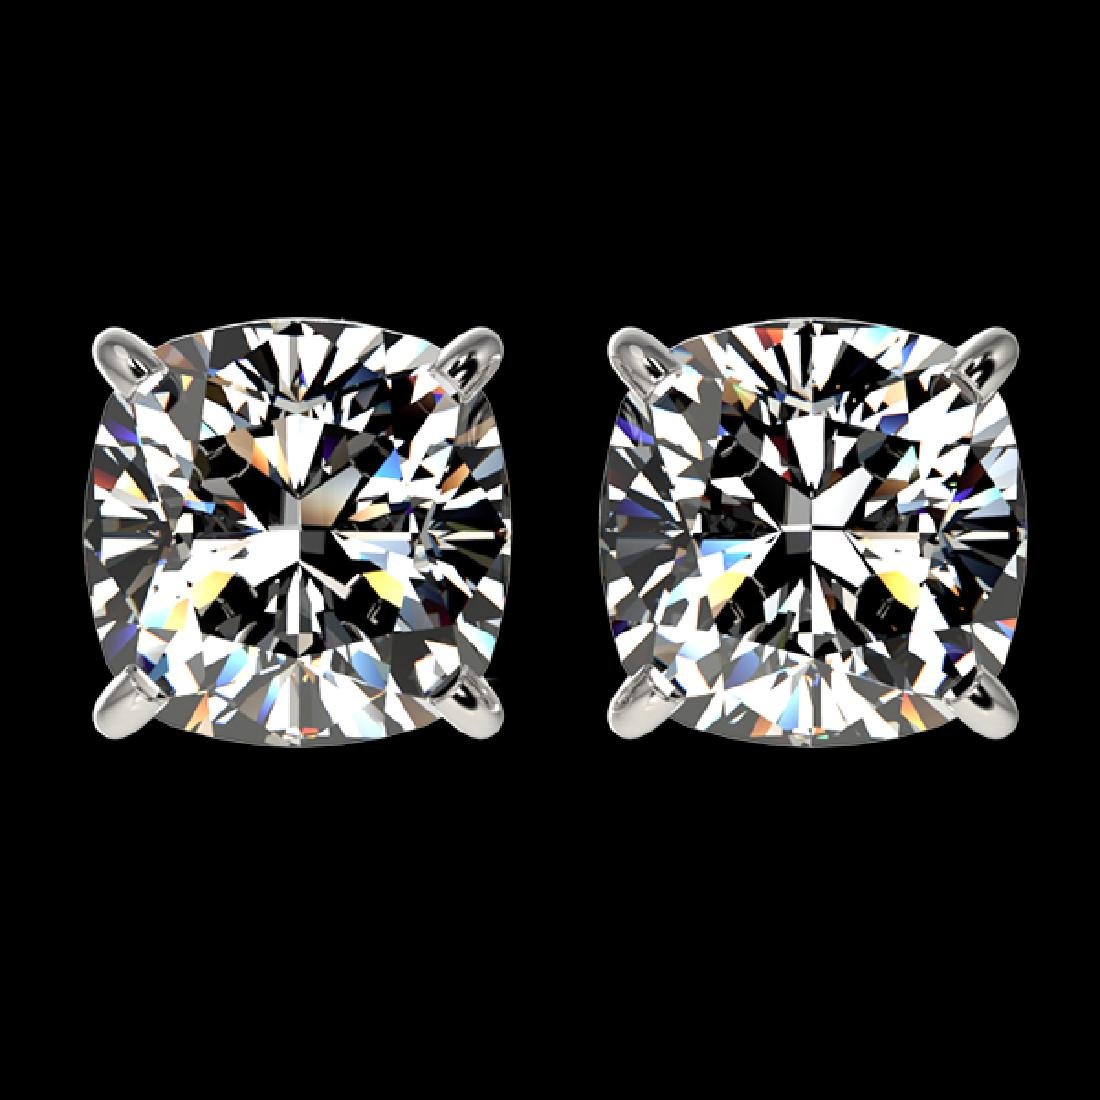 2 CTW Certified VS/SI Quality Cushion Cut Diamond Stud